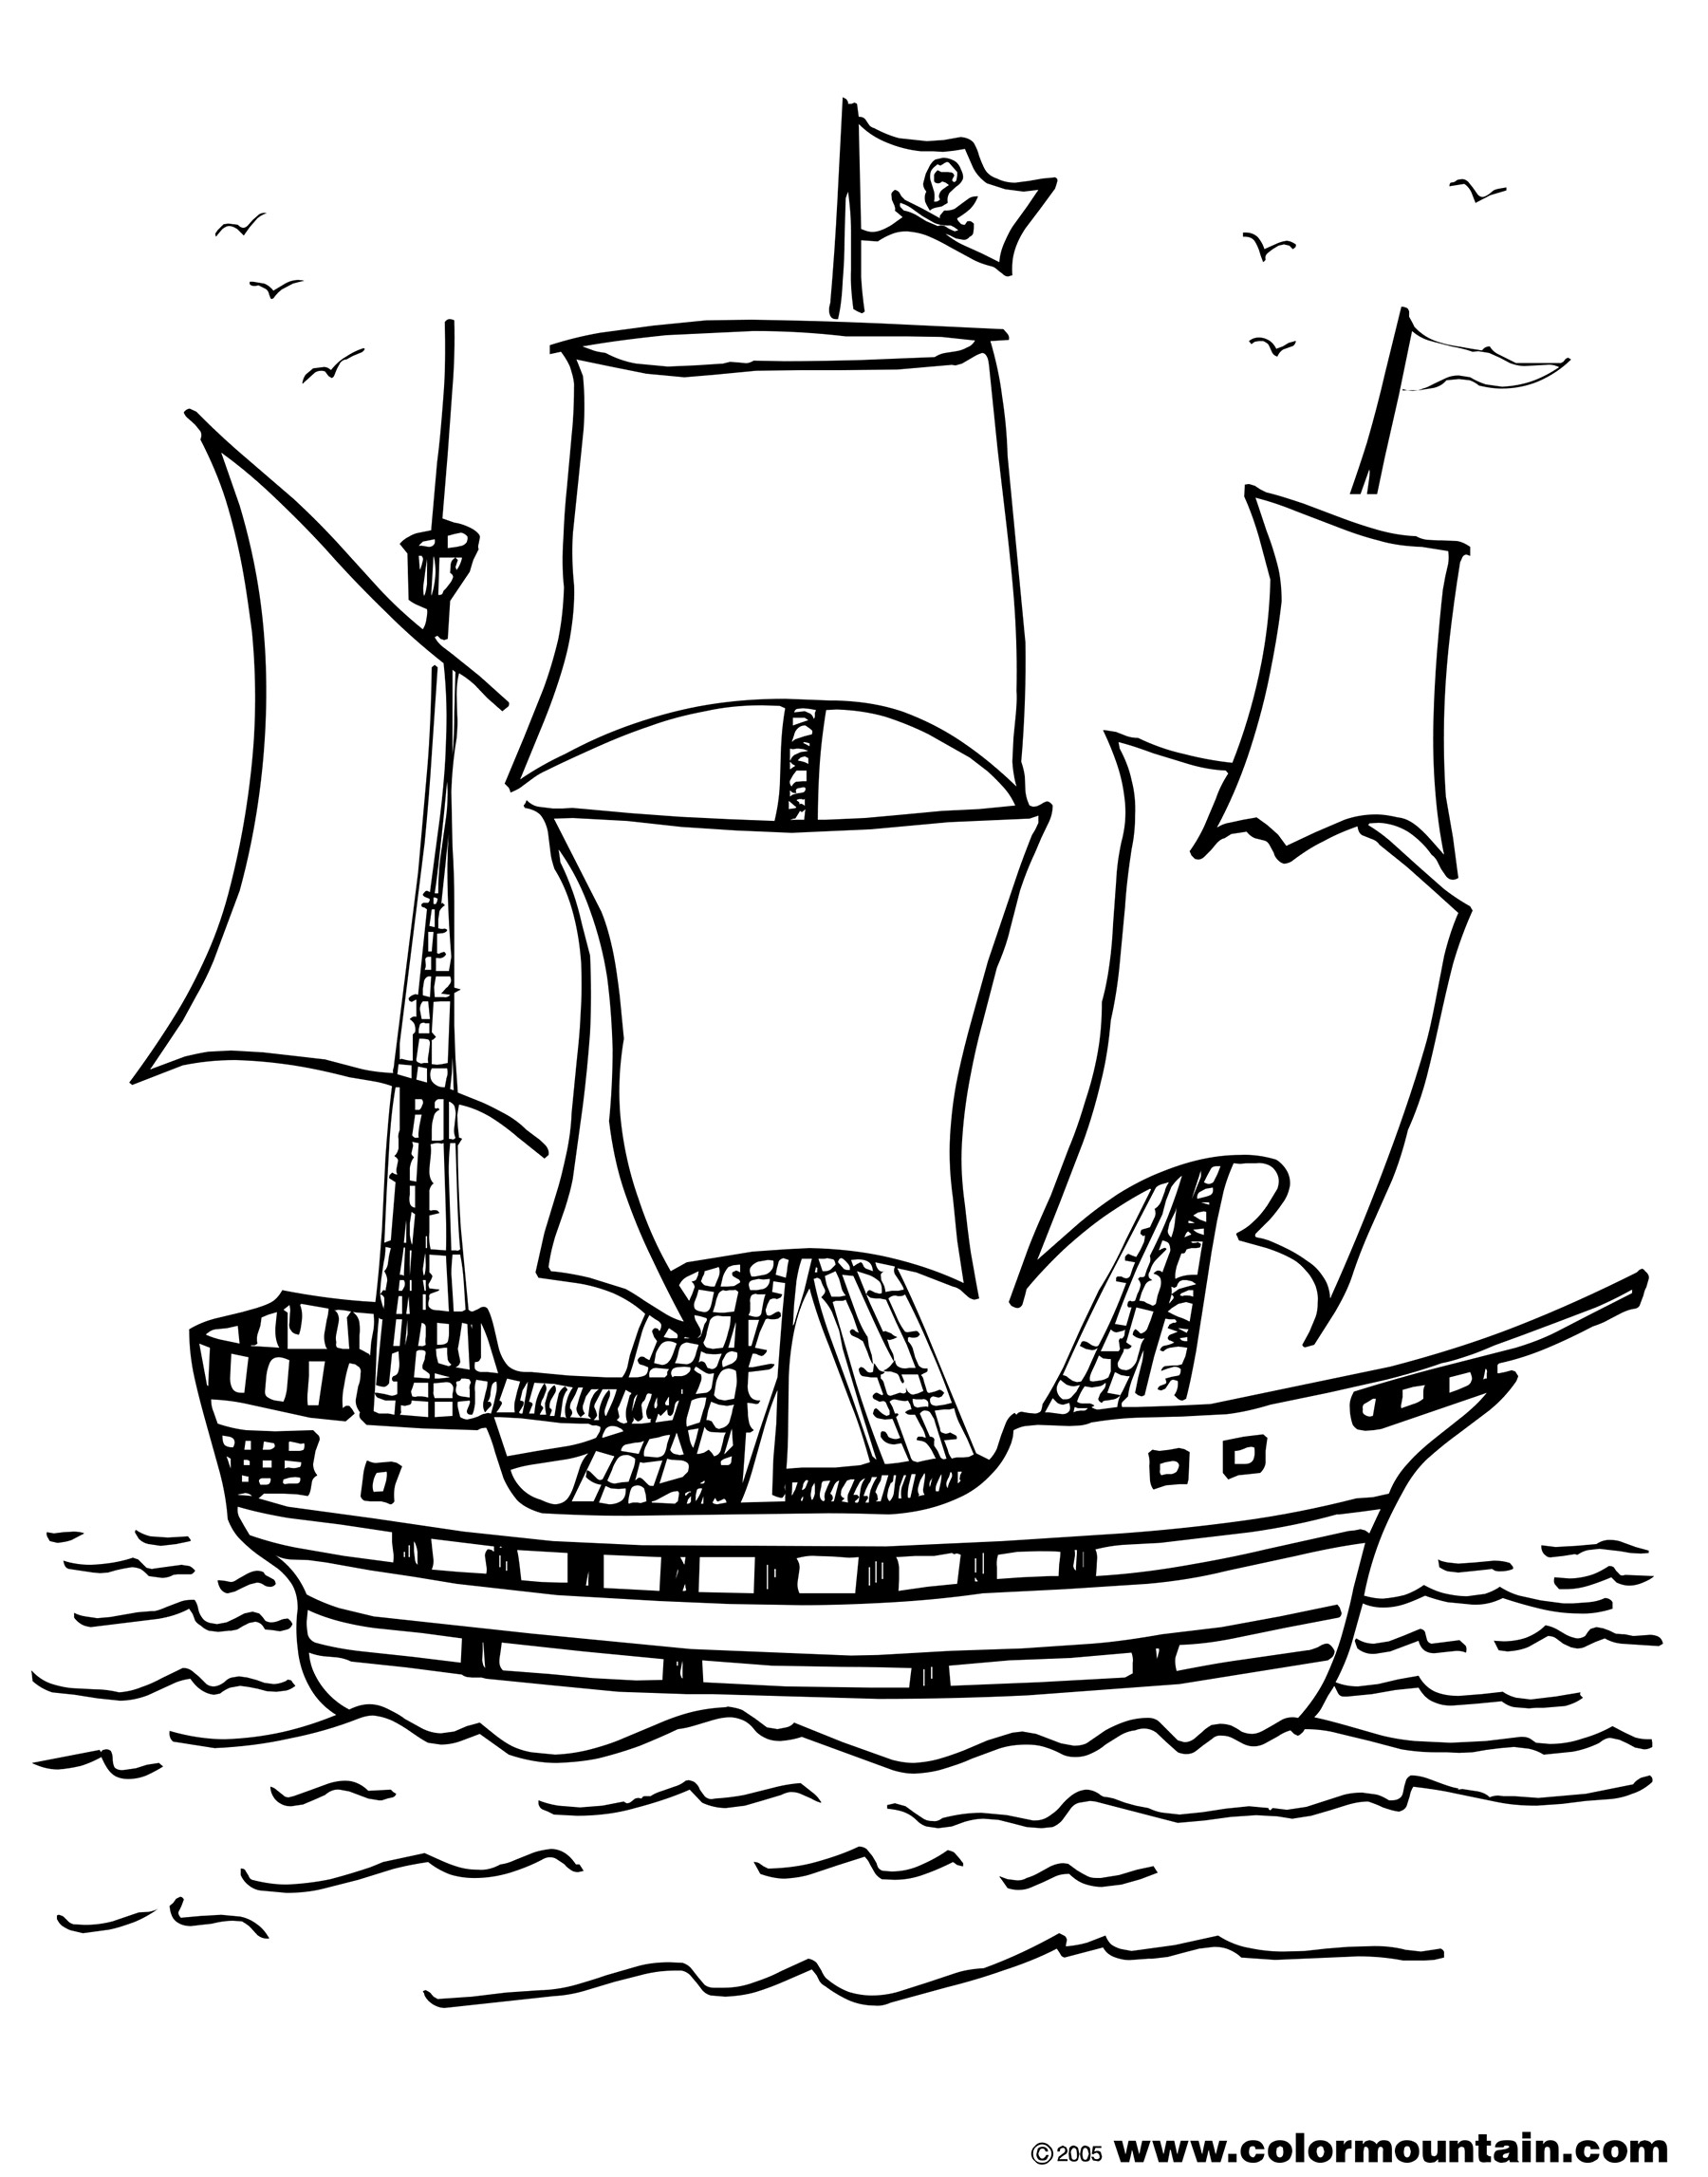 pirate ship to color pirate ship coloring pages to download and print for free pirate to ship color